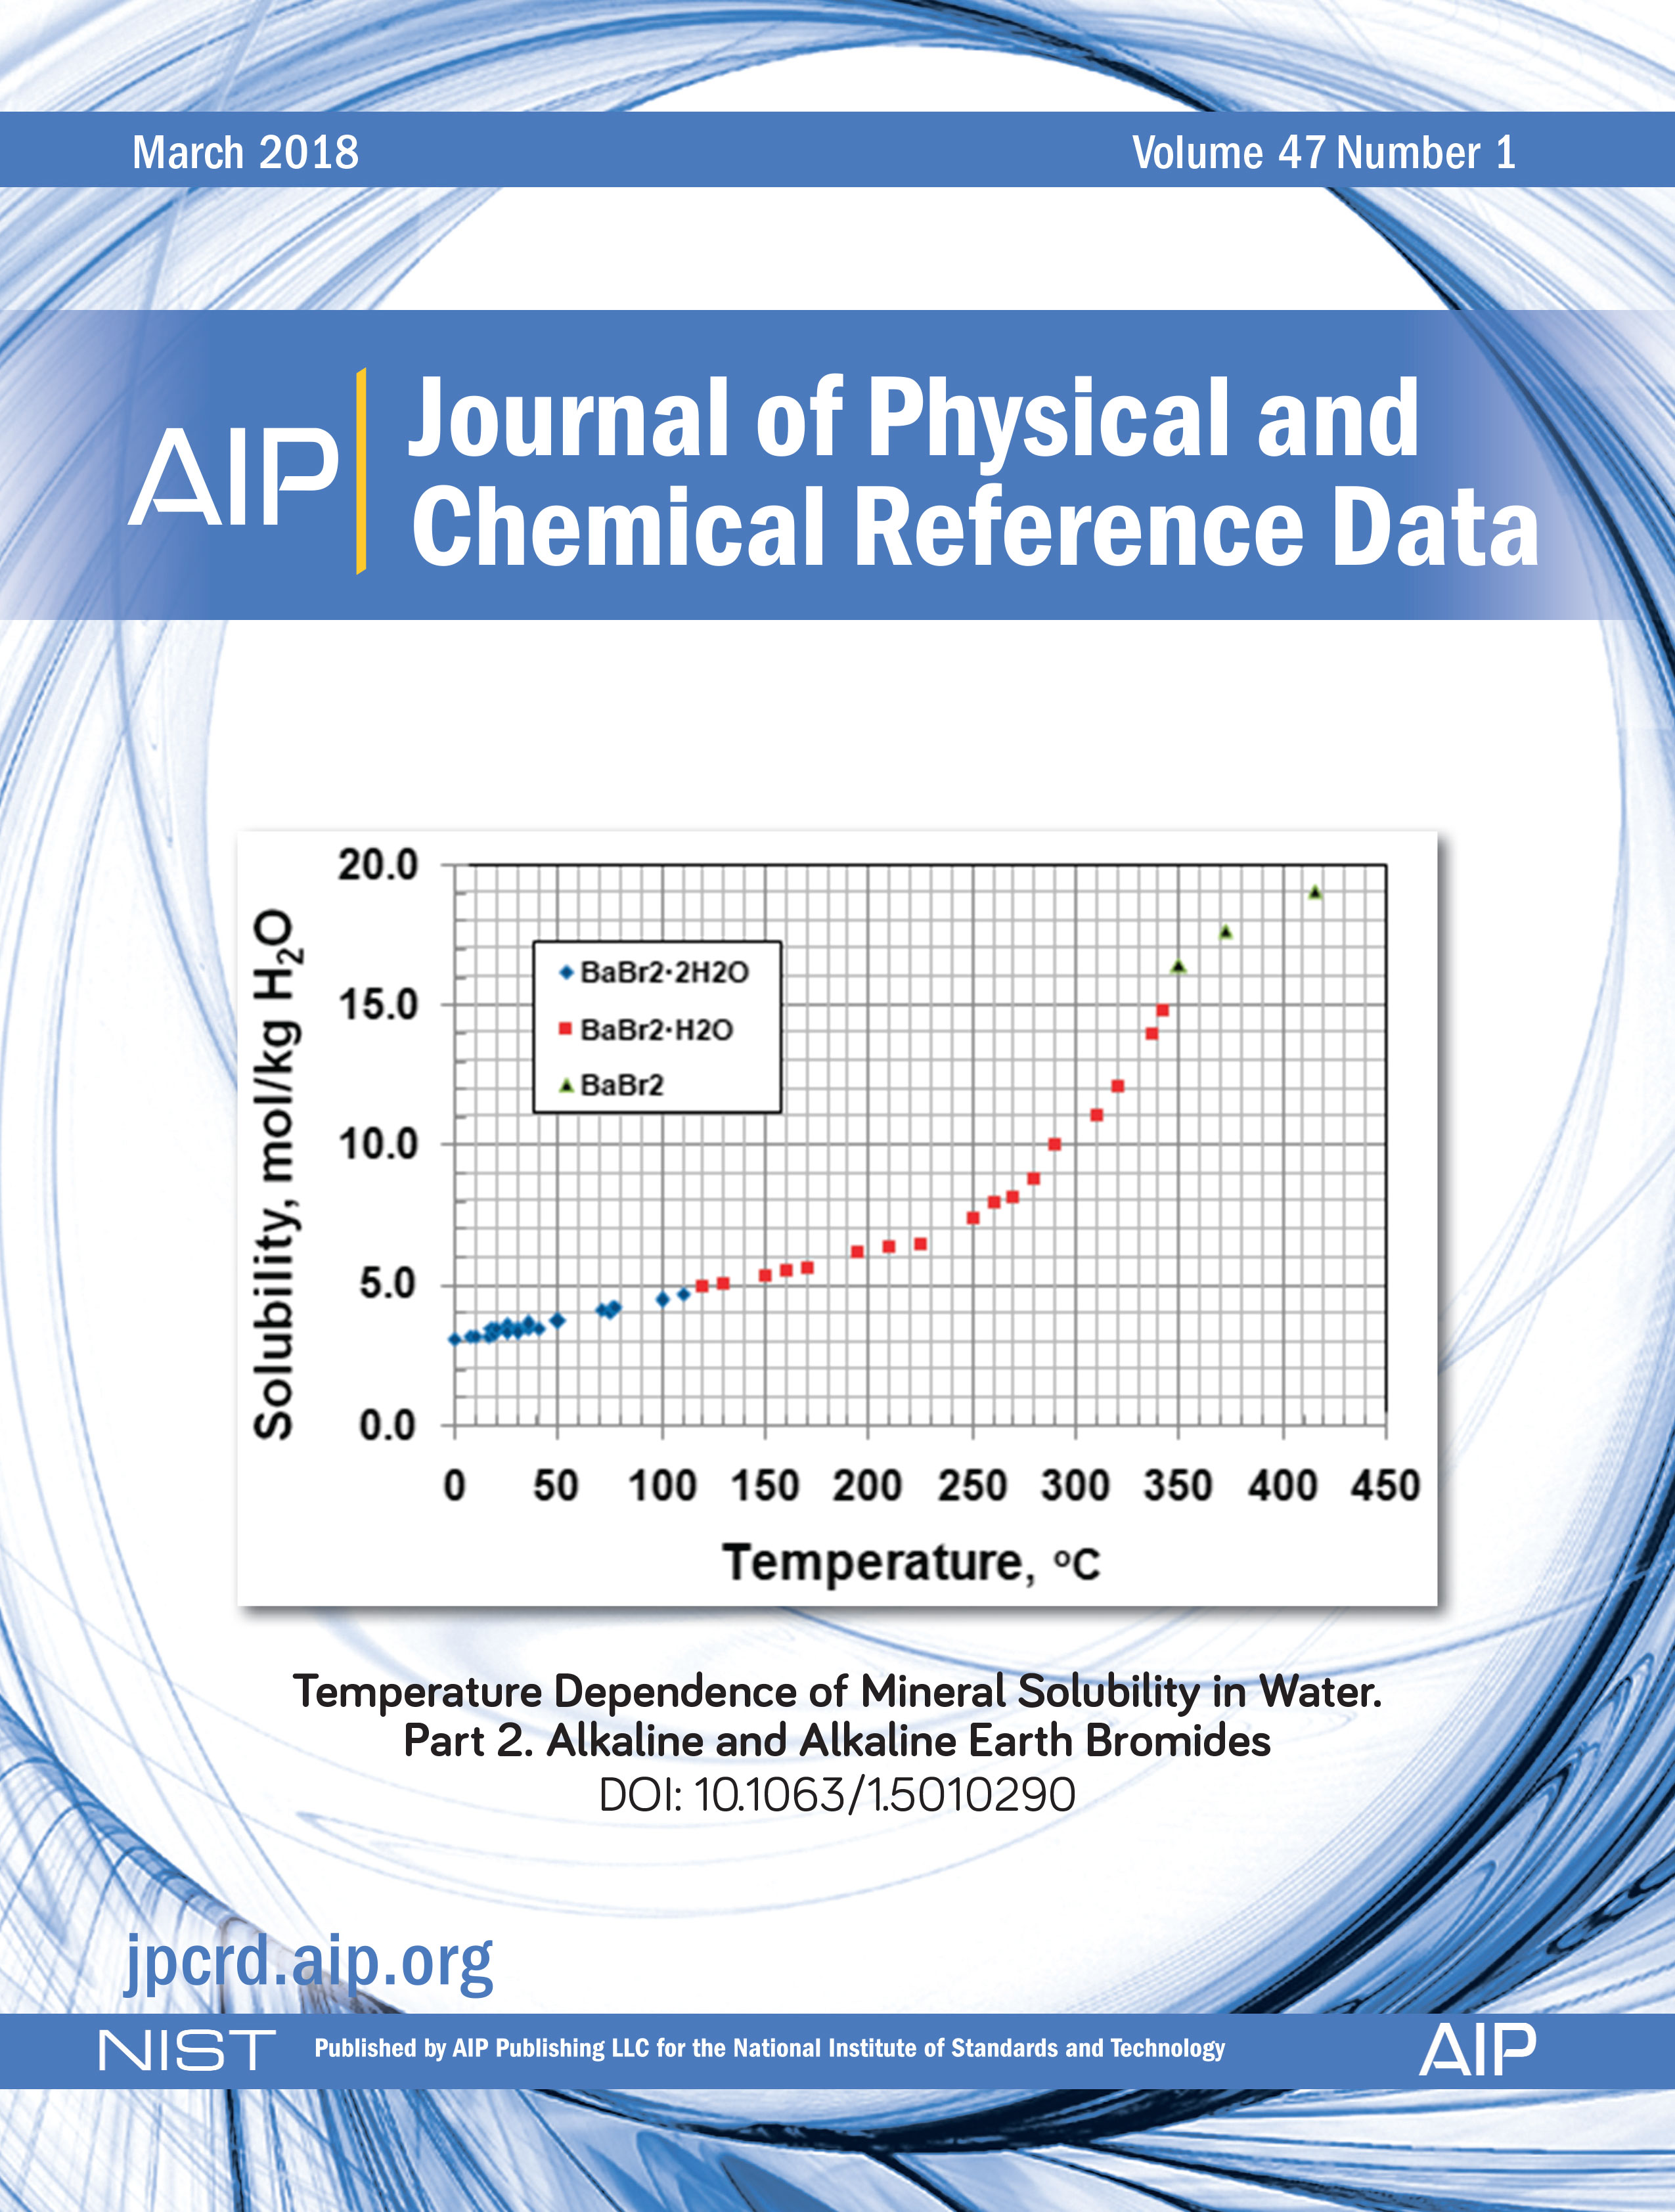 IUPAC-NIST Solubility Data Series  102  Solubility of